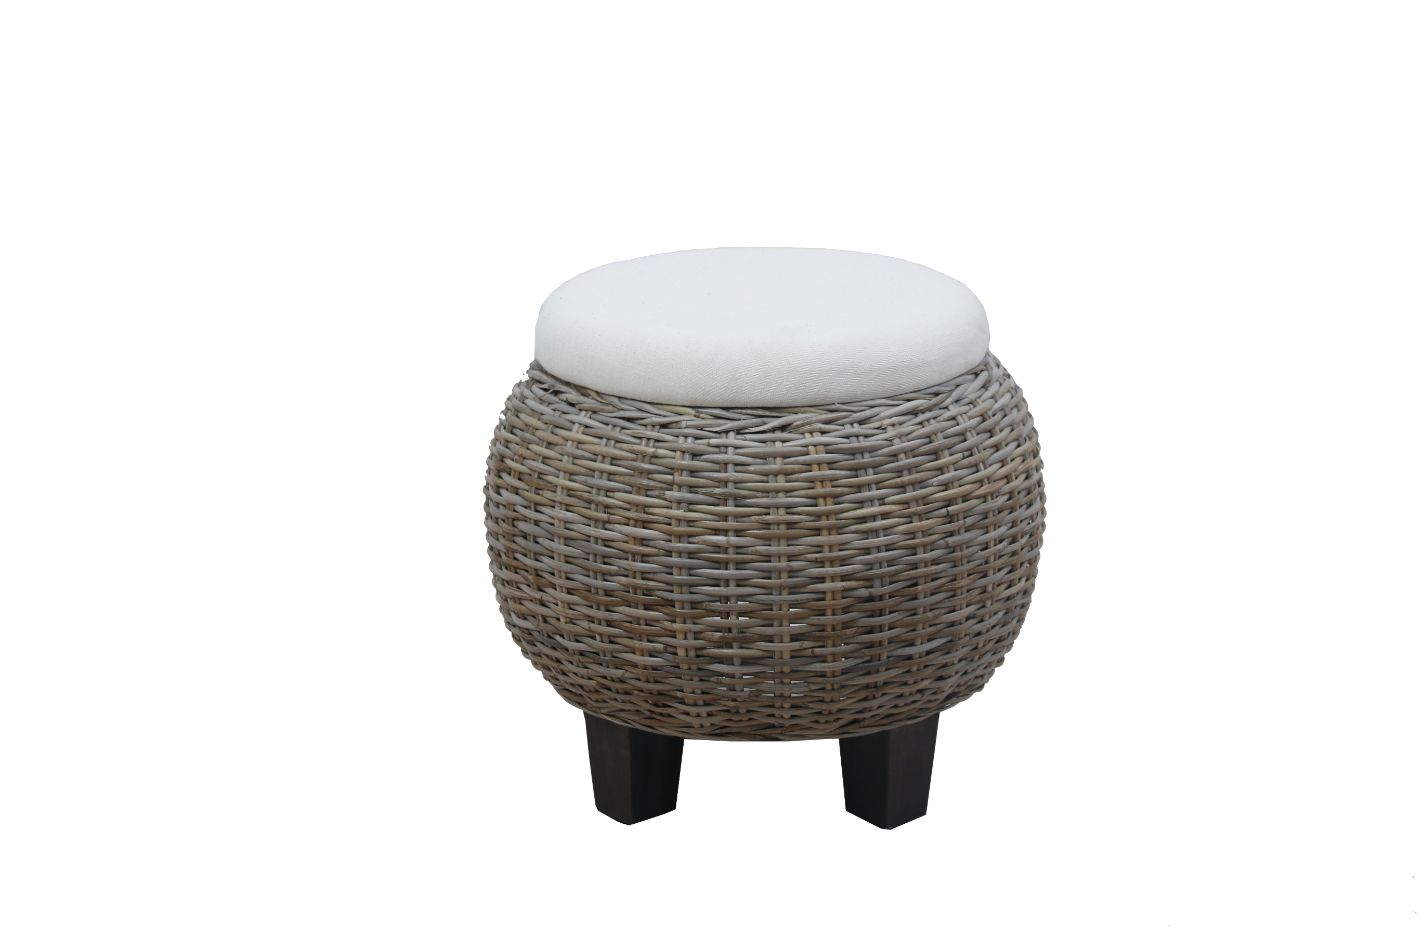 Rattan Furniture 11